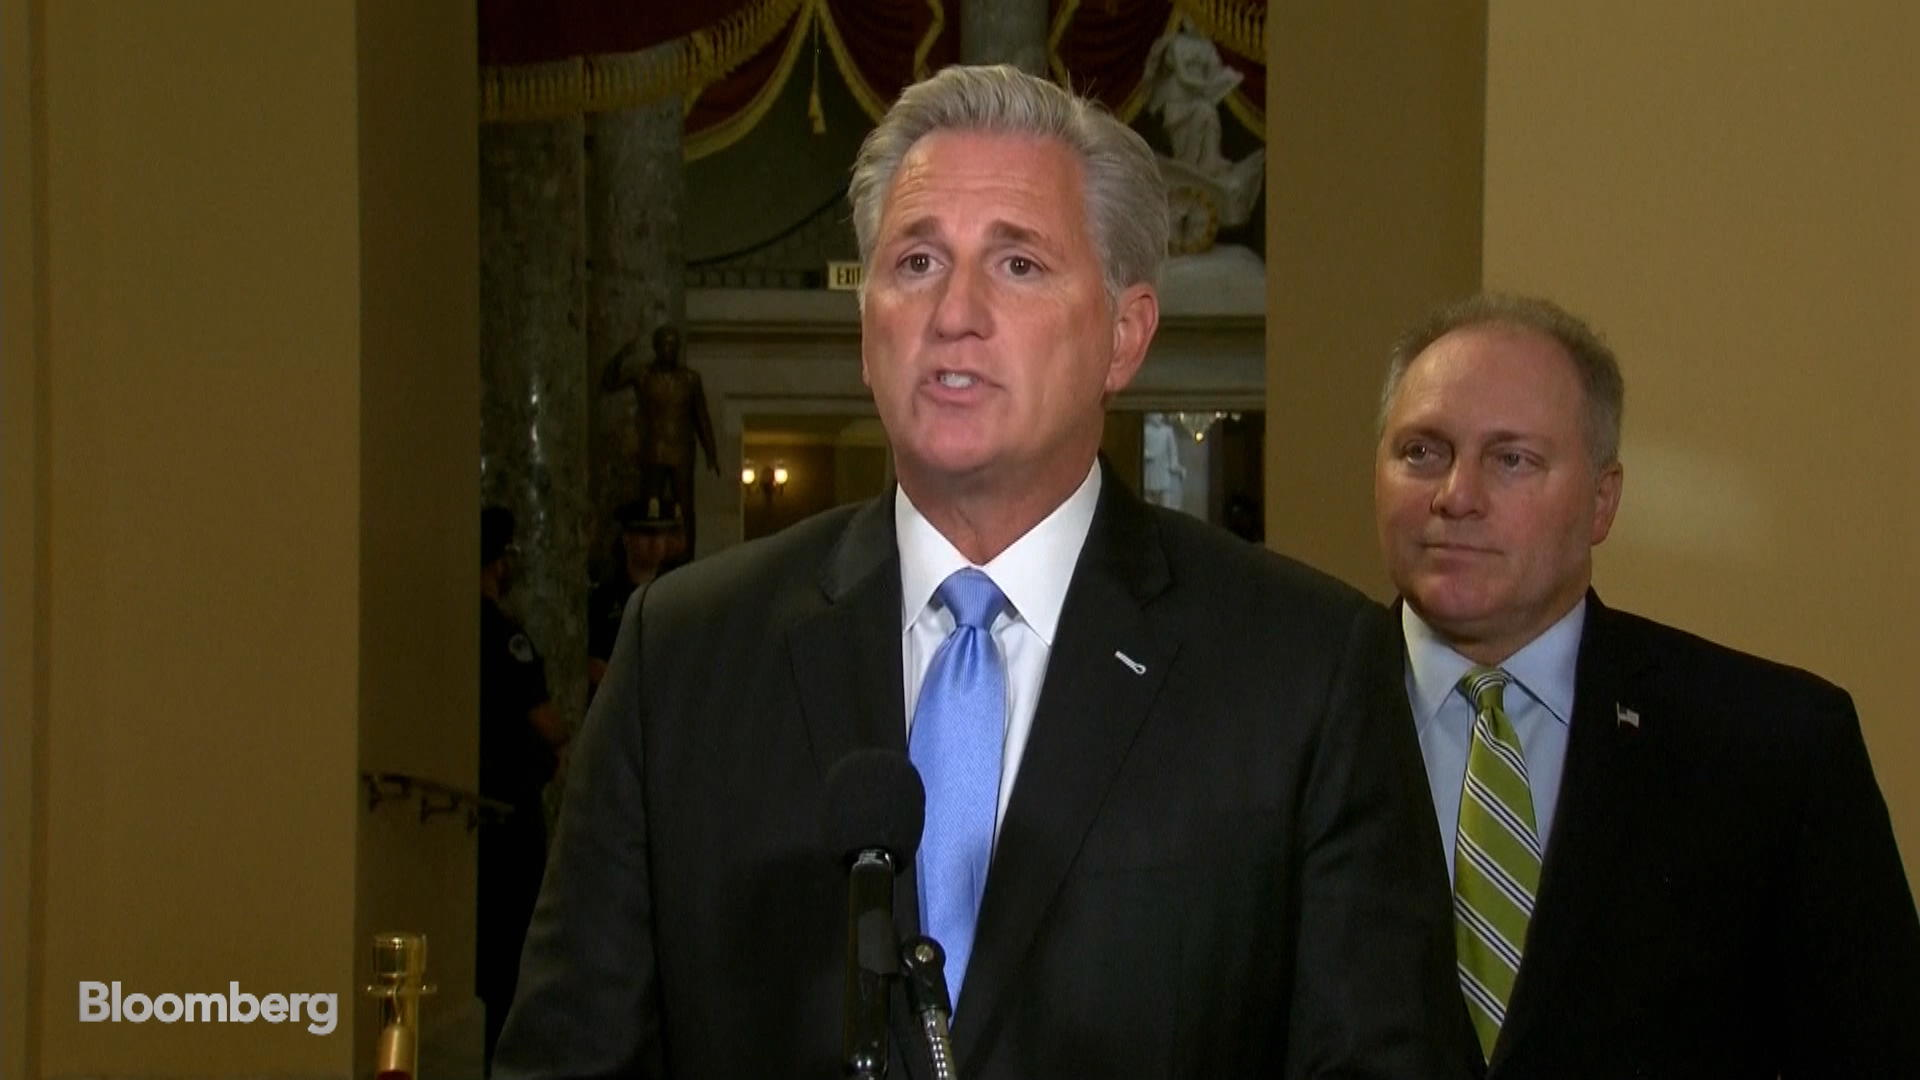 Kevin McCarthy, House Minority Leader, on Pelosi's Trump Impeachment Inquiry Announcement